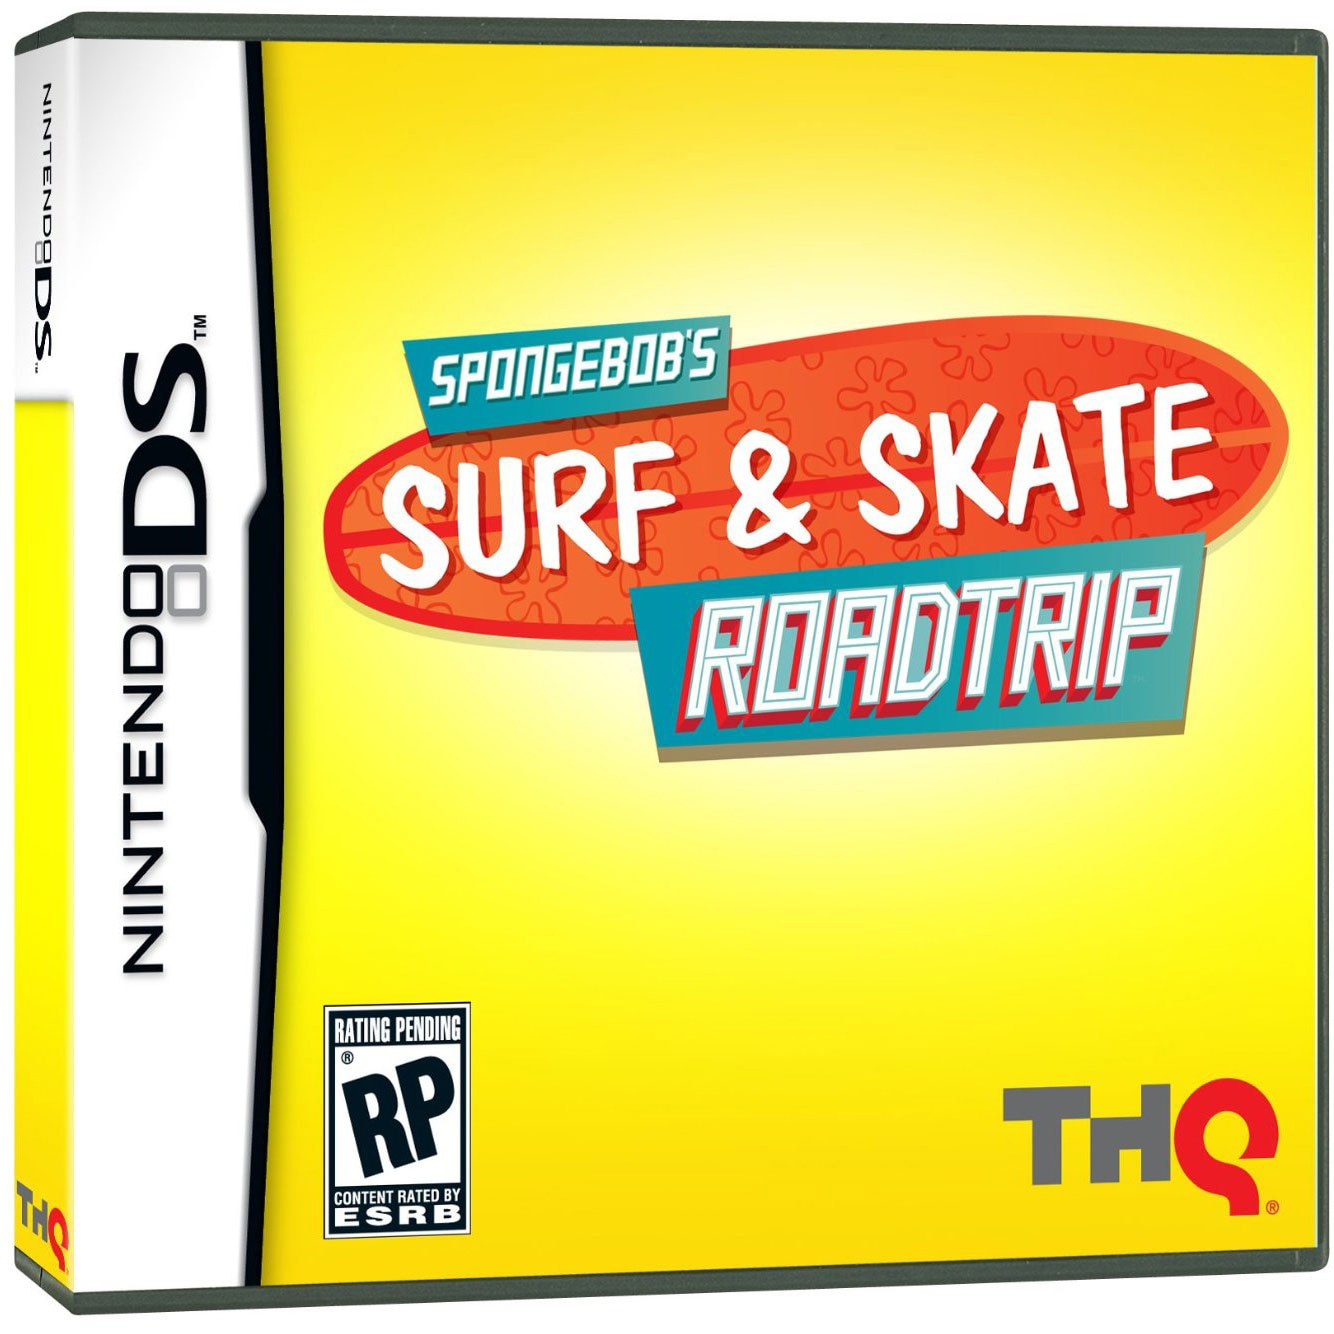 Nintendo DS - Spongebob Surf & Skate Roadtrip